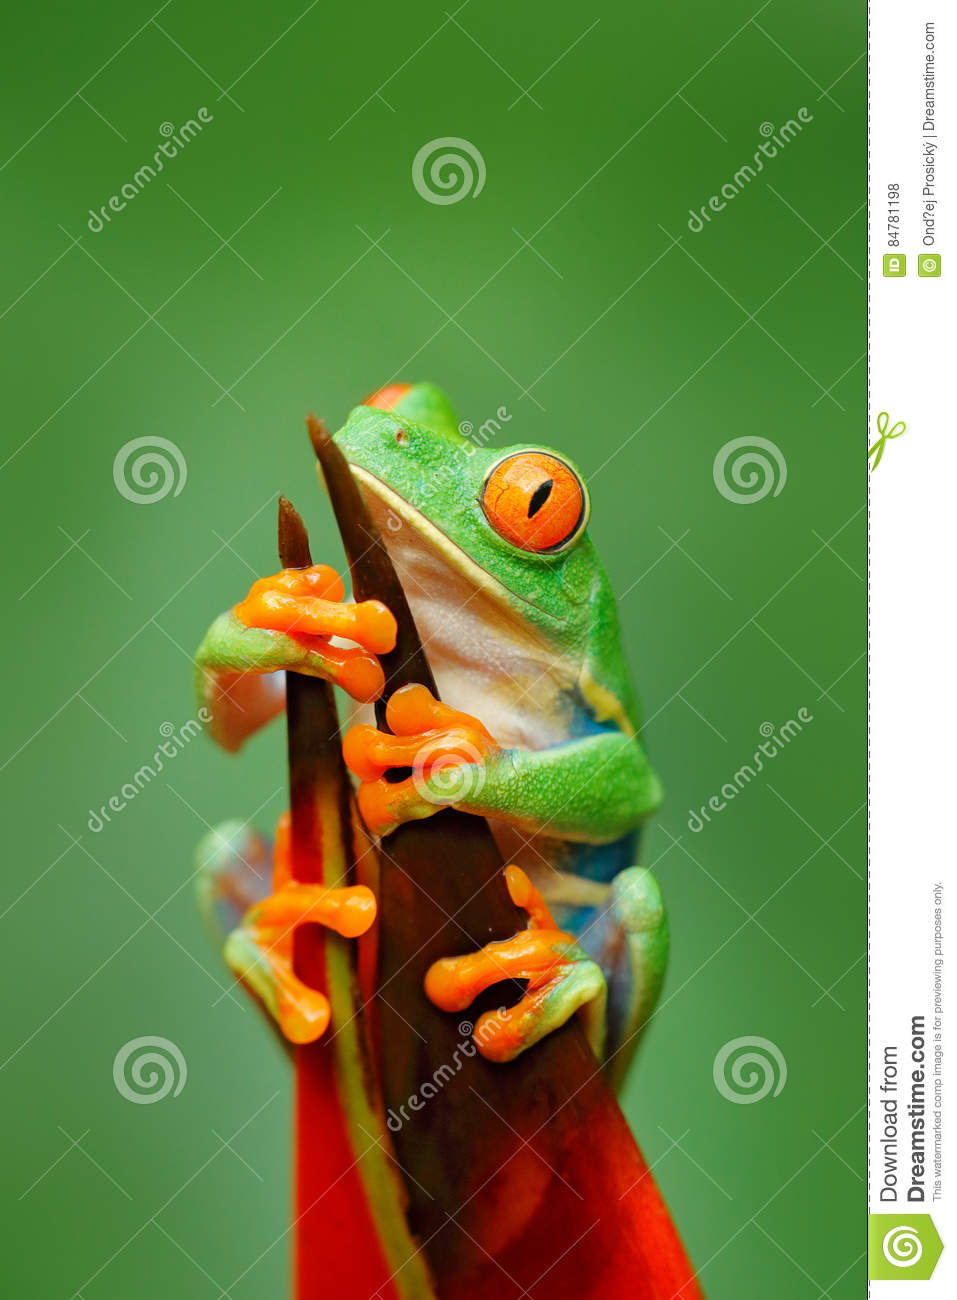 Exotic animal from central America, red flower. Red-eyed Tree Frog, Agalychnis callidryas, animal with big red eyes, in the nature